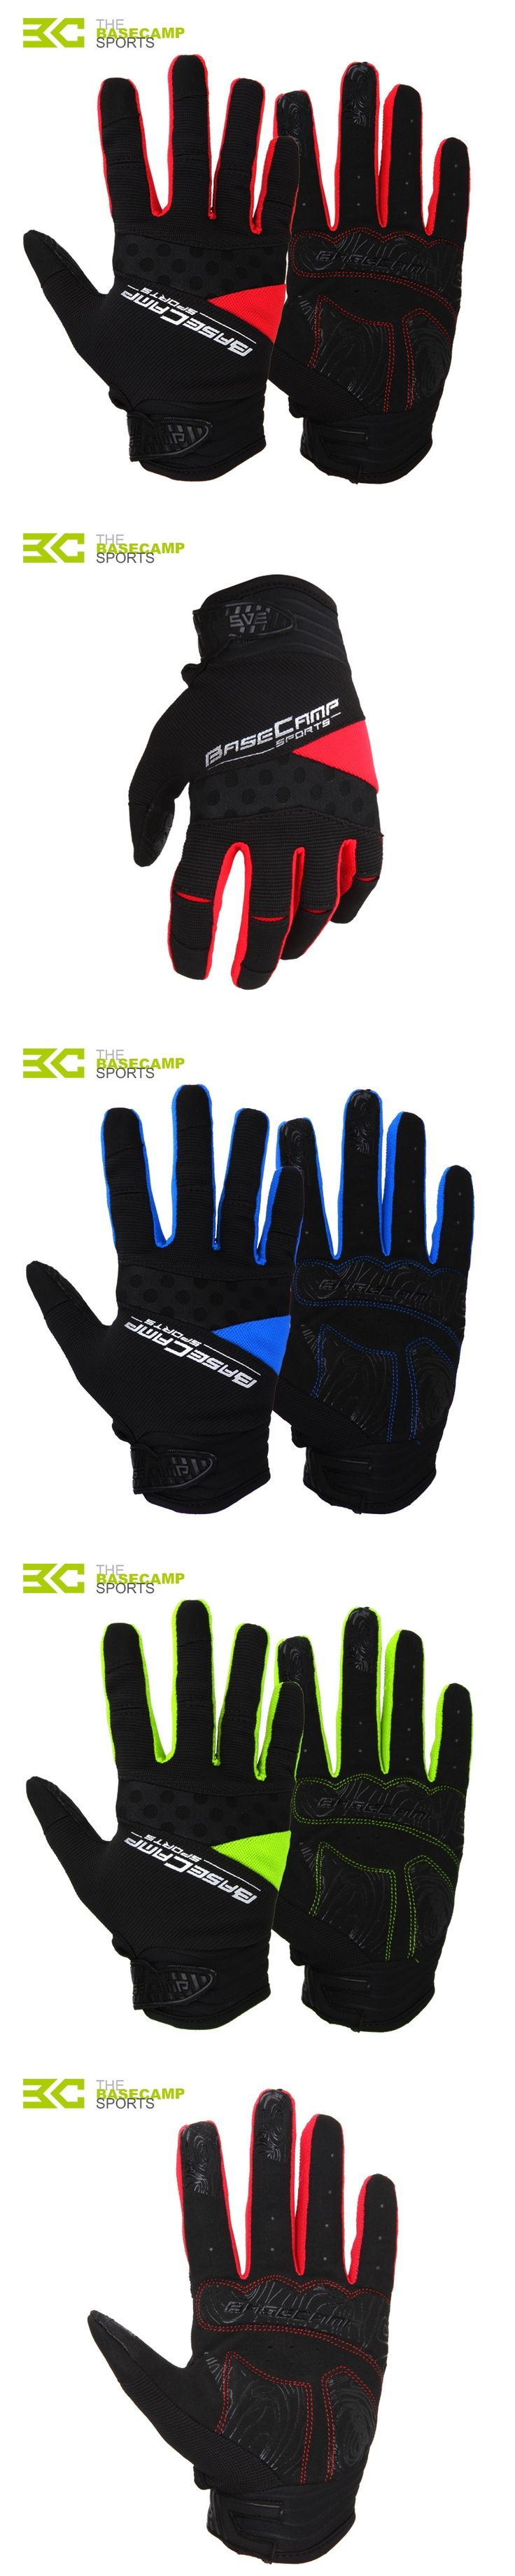 Shockproof Telefingers Full Finger Cycling Gloves Gel Pad Guantes Ciclismo Luvas Inverno MTB Bike Bicycle Gants Velo BC-232